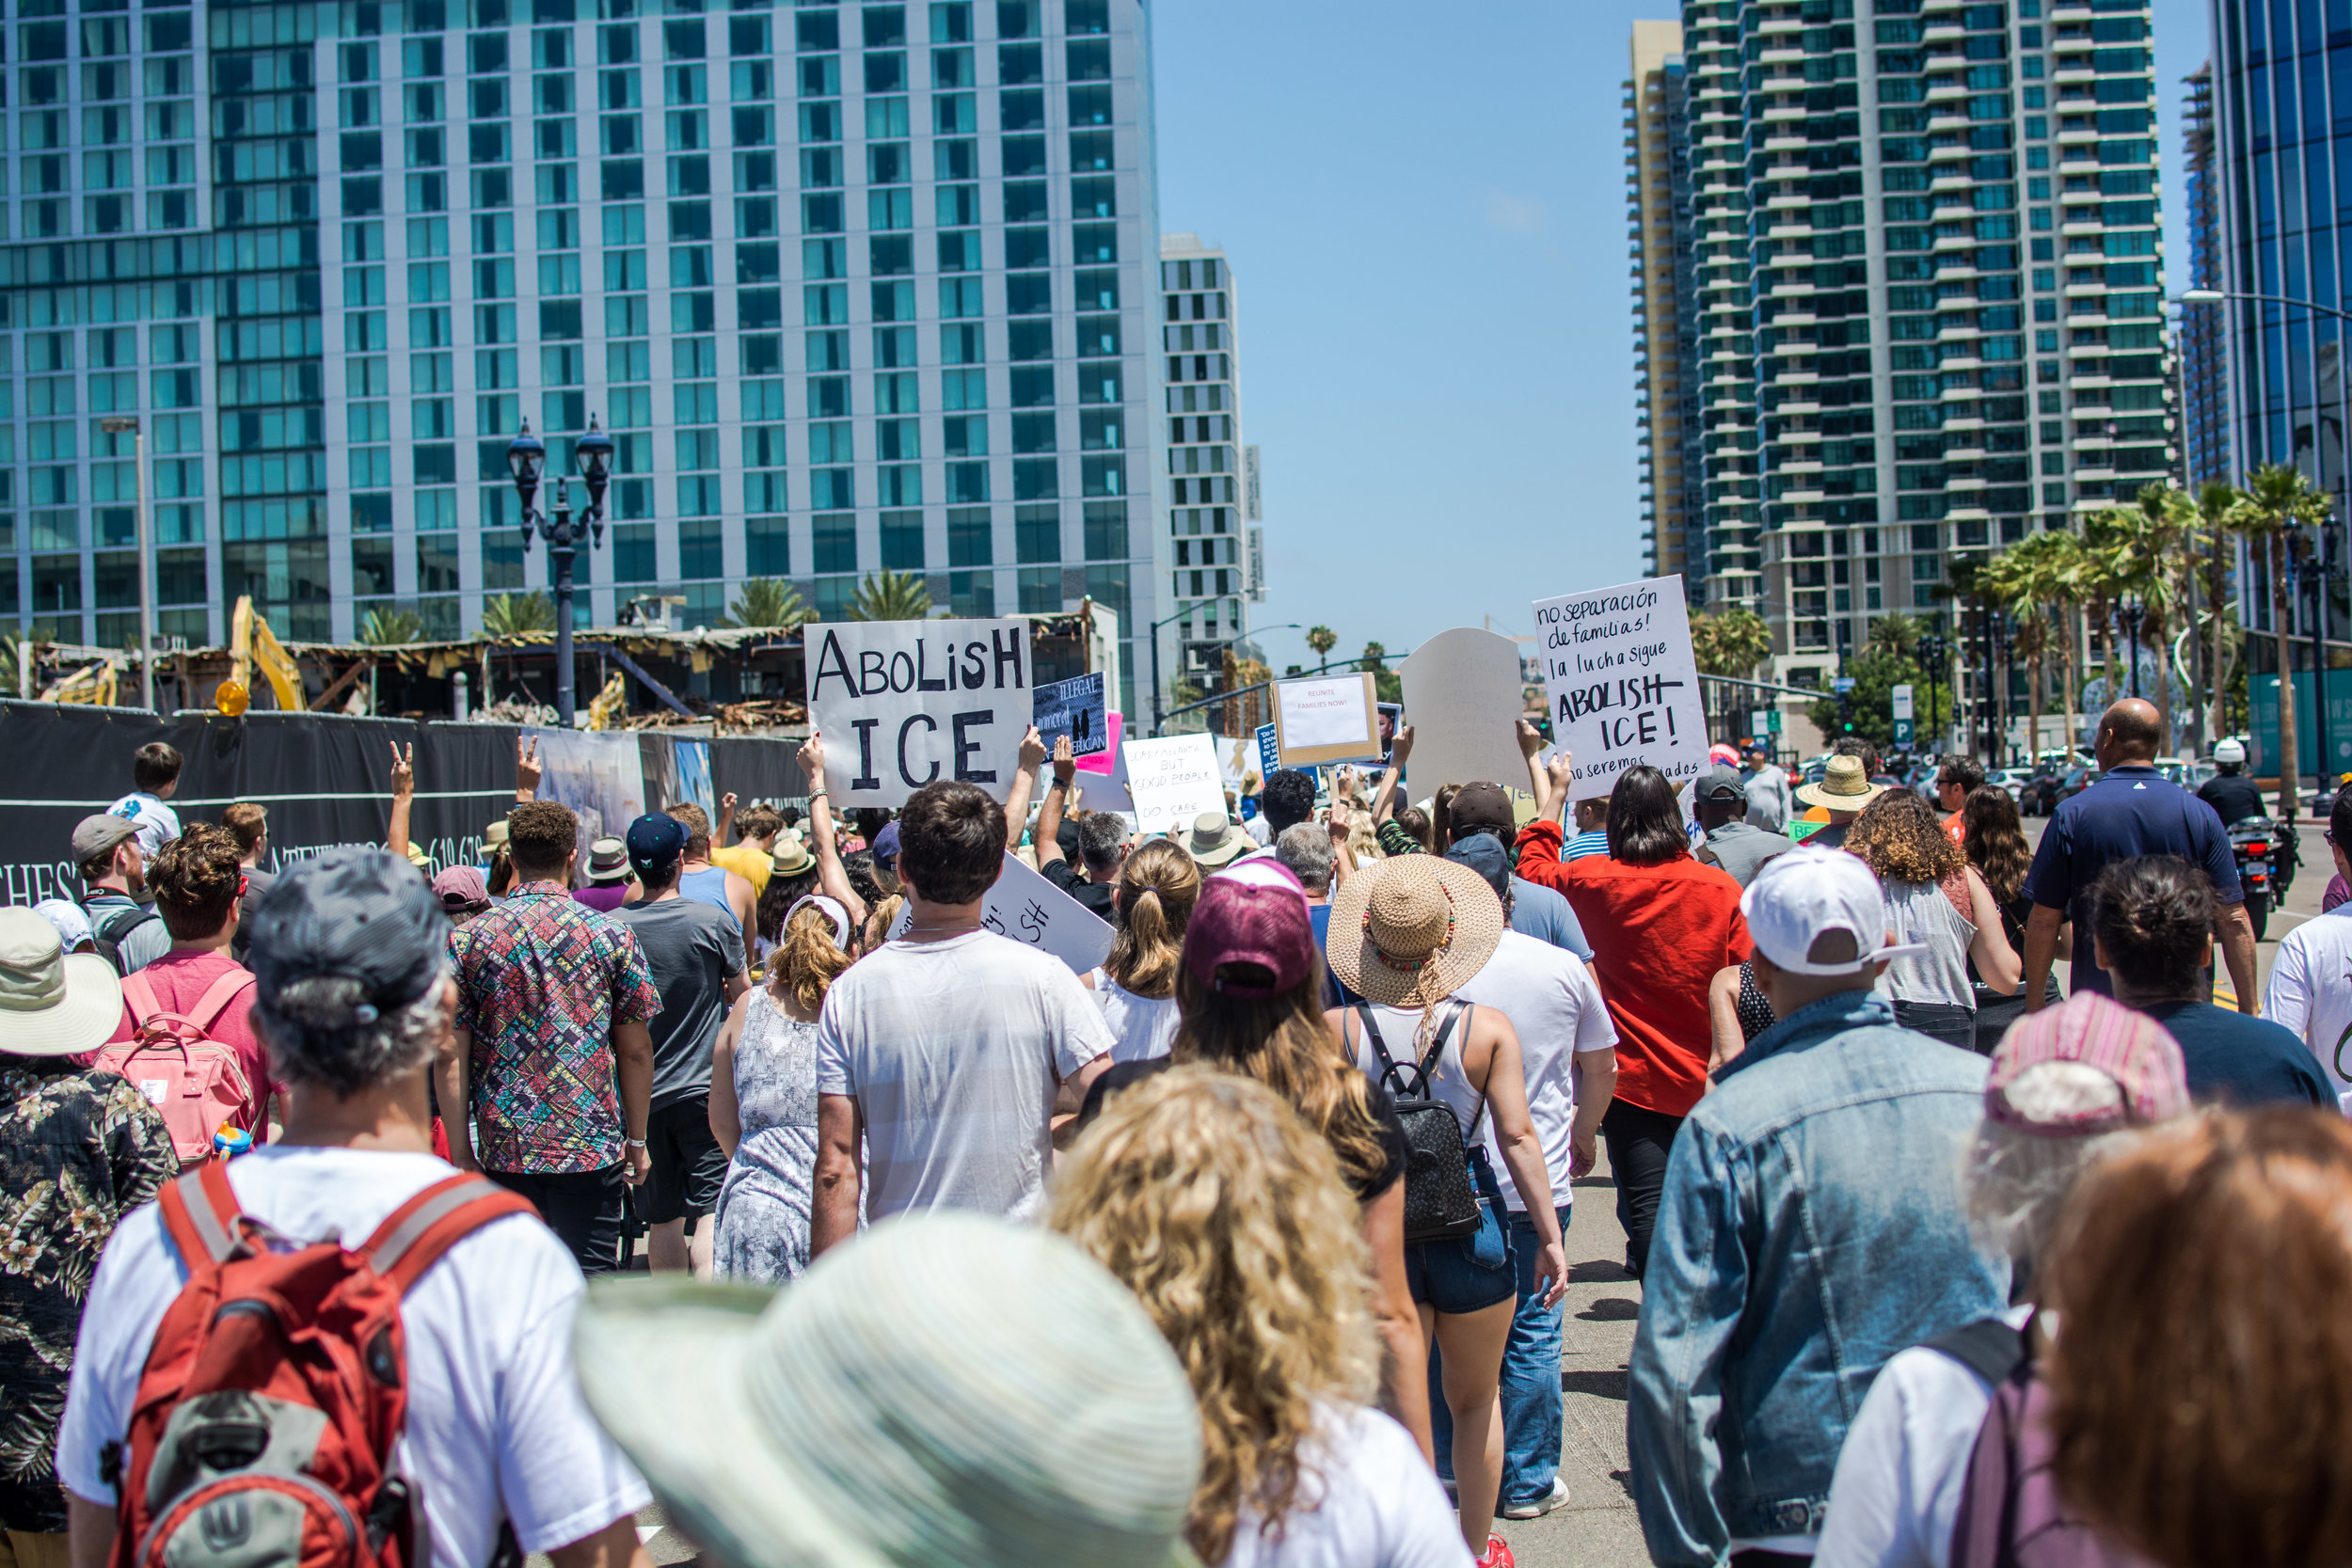 FamiliesBelongTogetherMarch-20.jpg